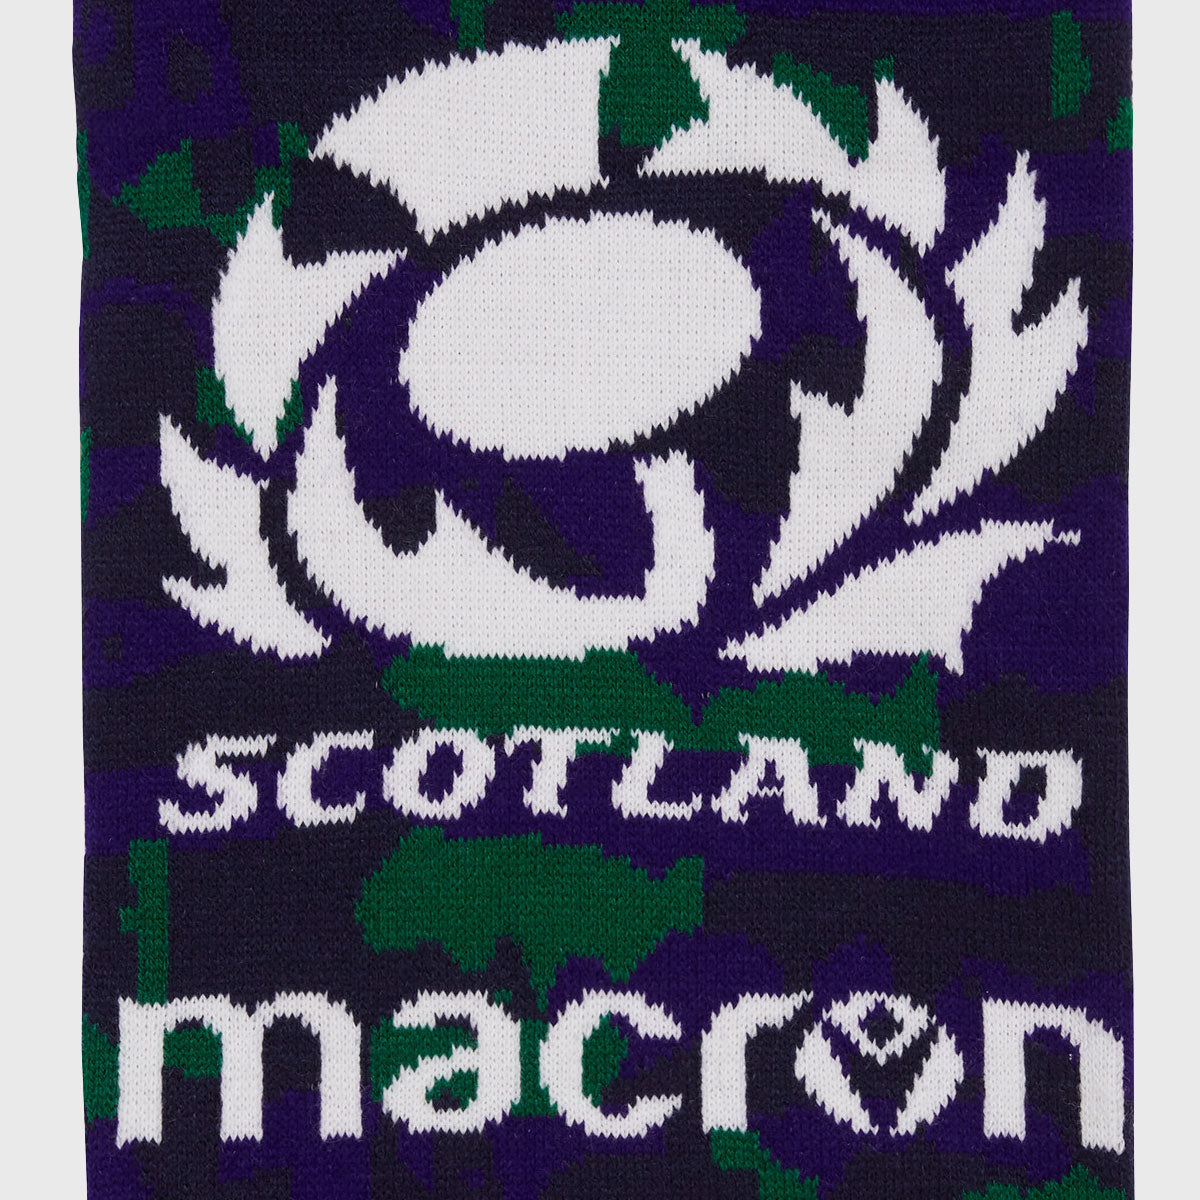 Scotland Rugby Camo Scarf Navy/Green/Purple - First XV rugbystuff.com